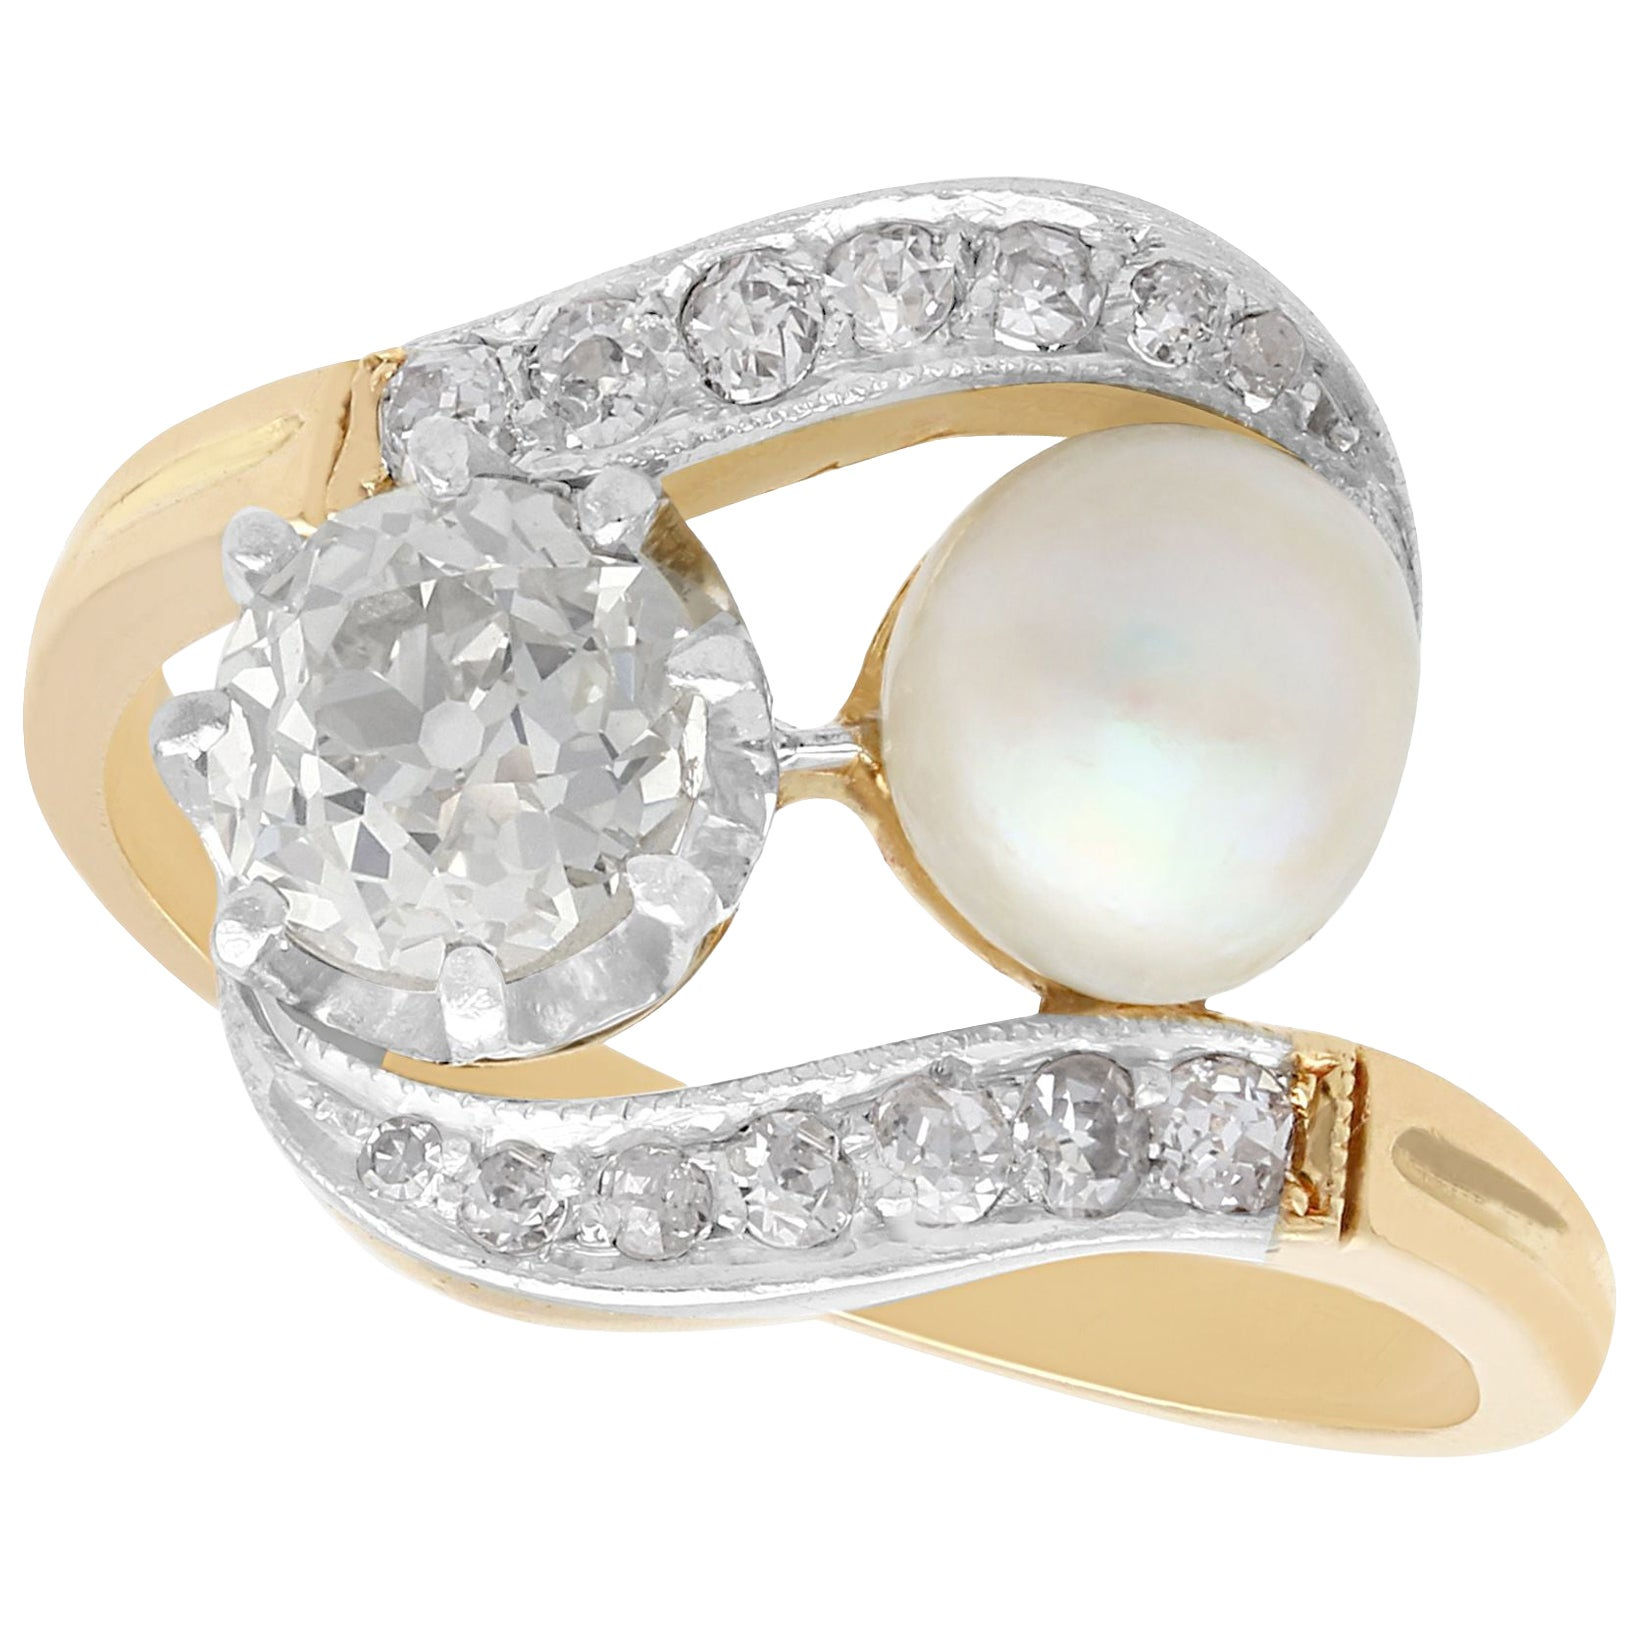 Antique 1.07 Carat Diamond and Natural Saltwater Pearl Yellow Gold Twist Ring